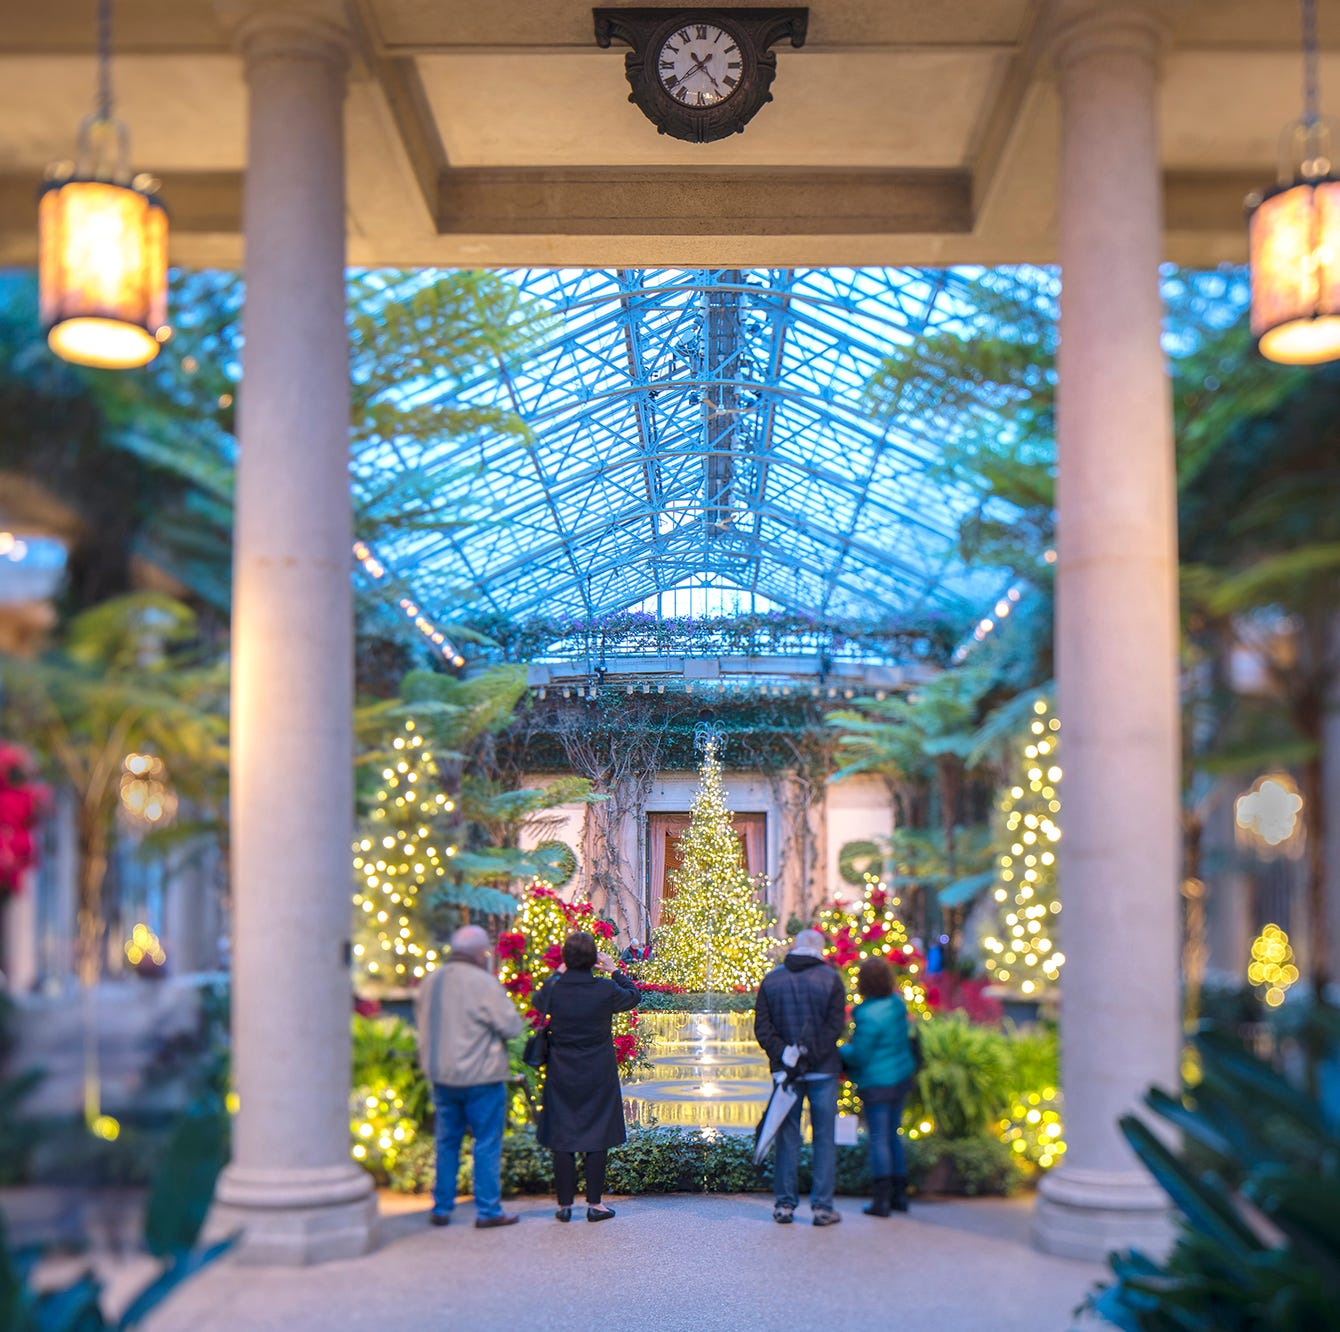 Longwood Gardens in Pennsylvania is a must-see for holiday splendor